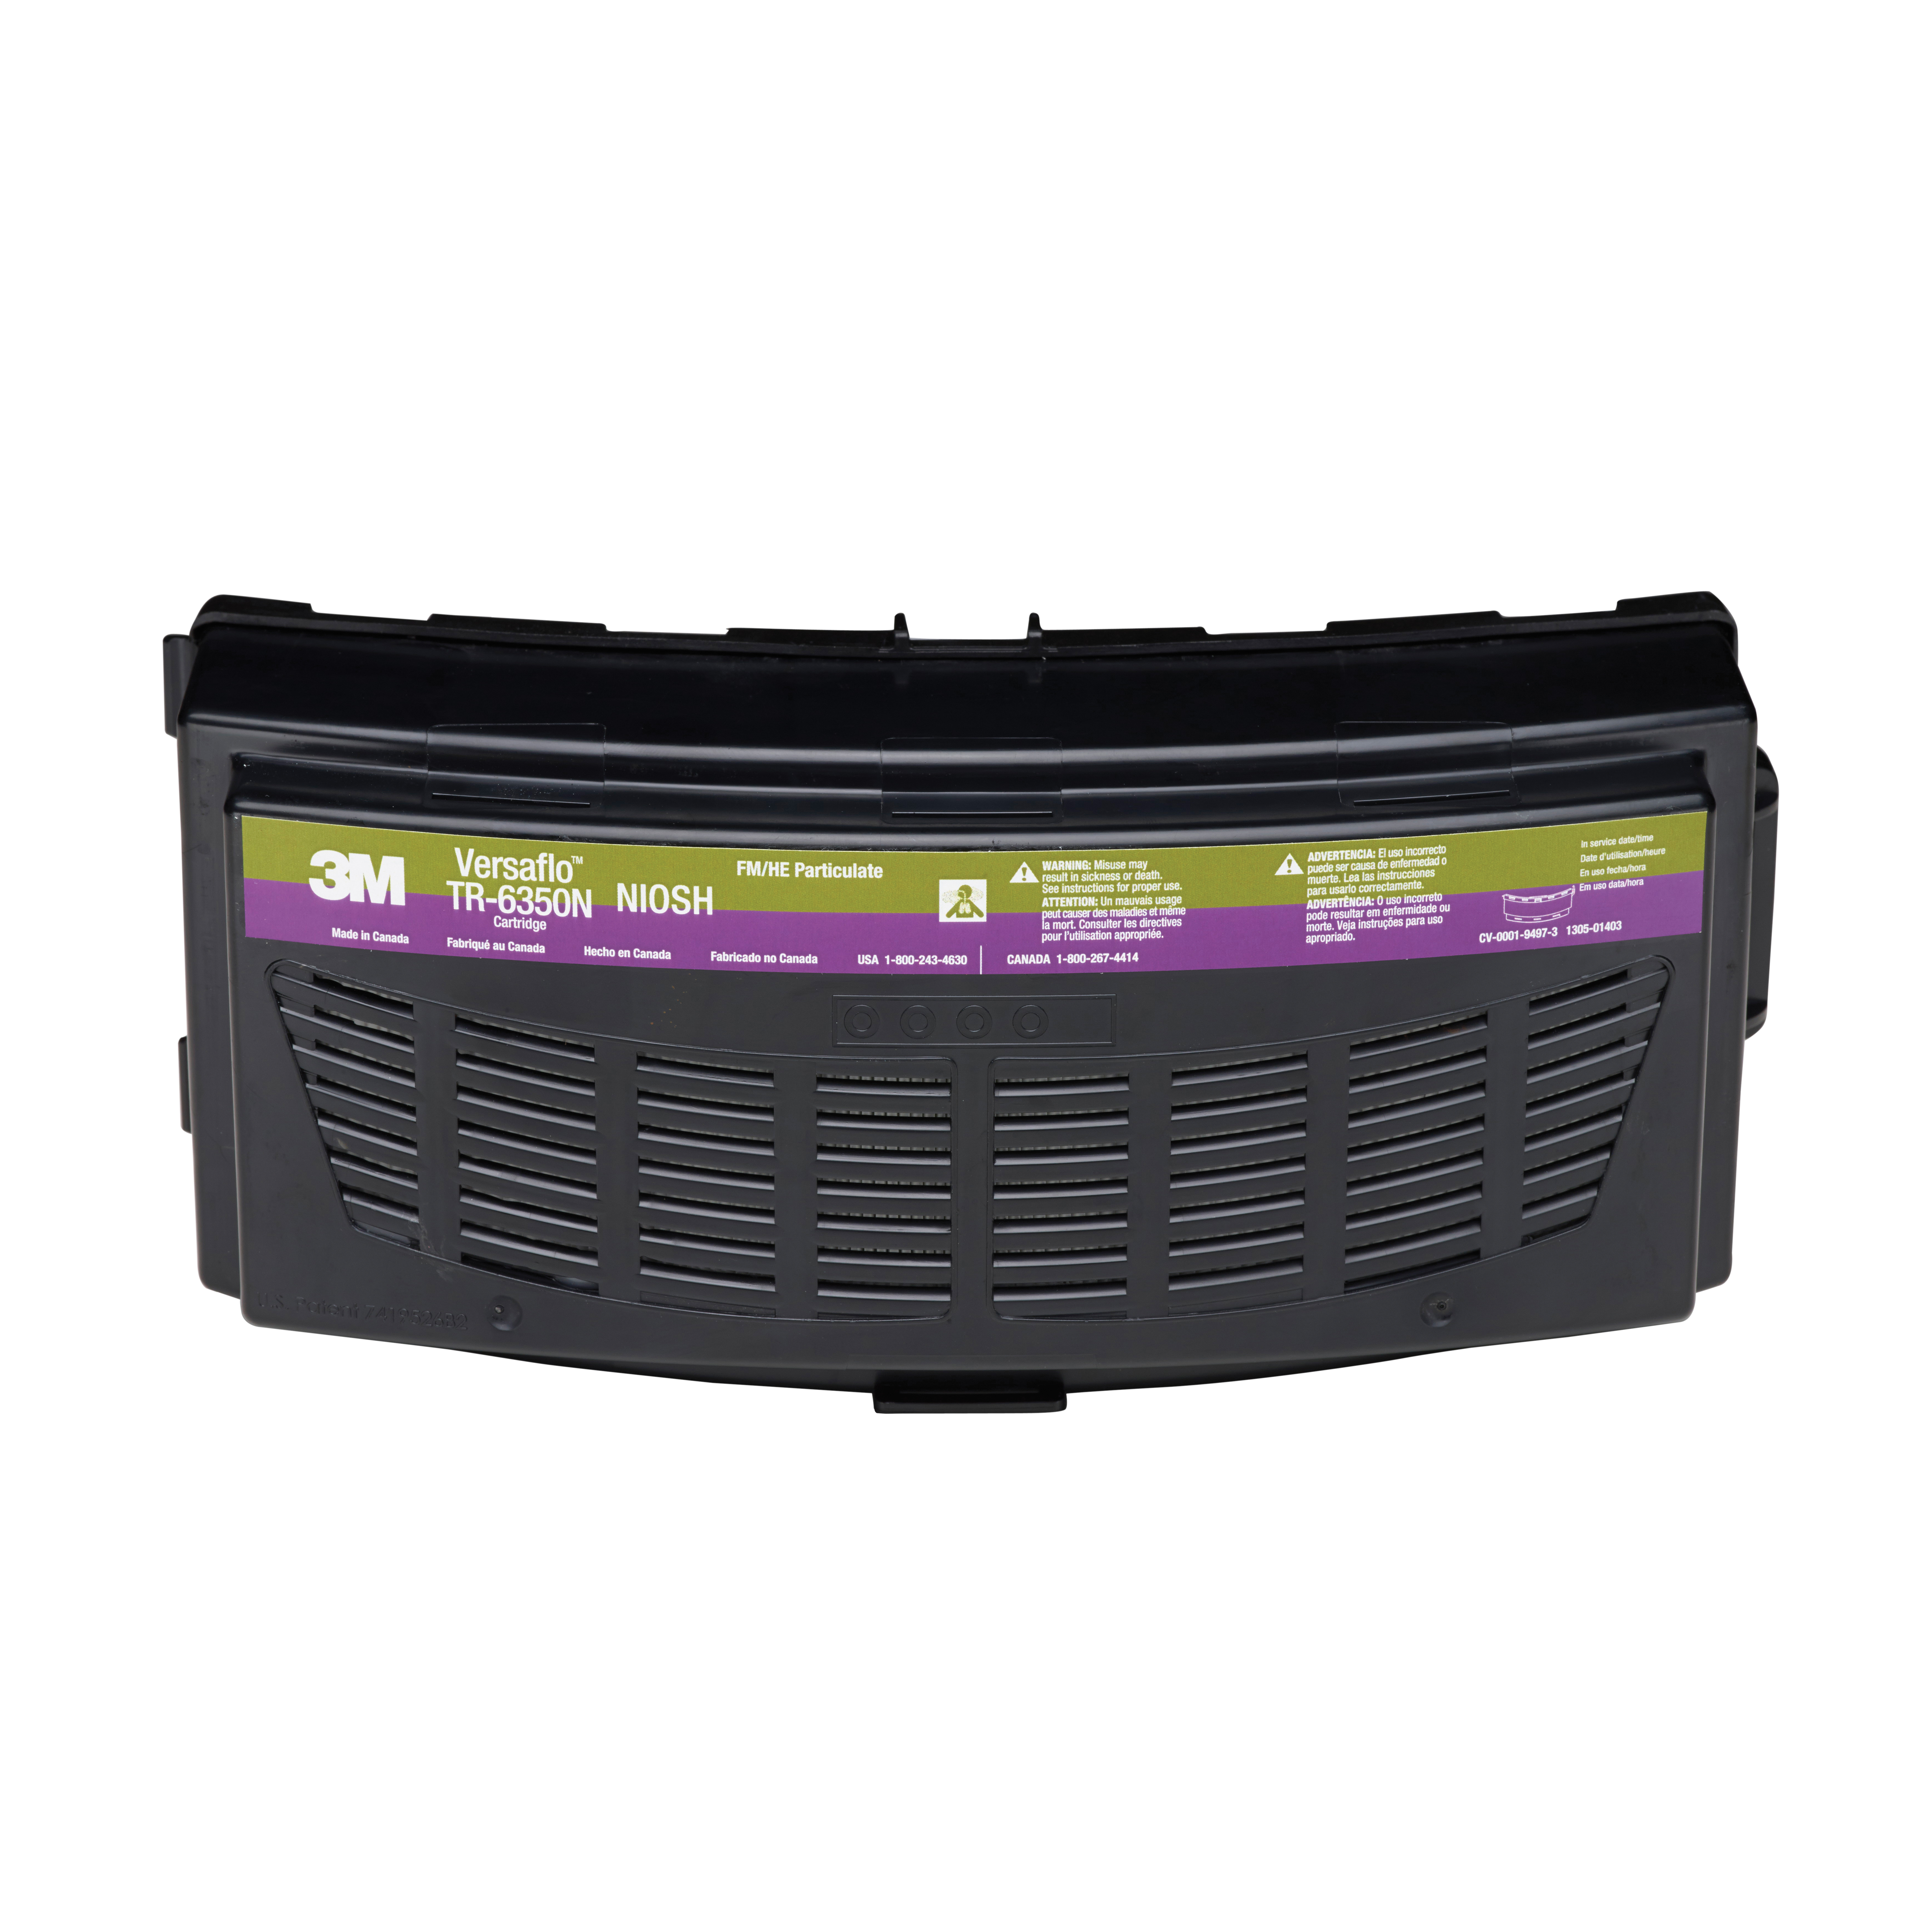 3M™ 051131-37365 TR Series Respirator HEPA Cartridge, For Use With Versaflo™ TR-600/800 Series PAPRs